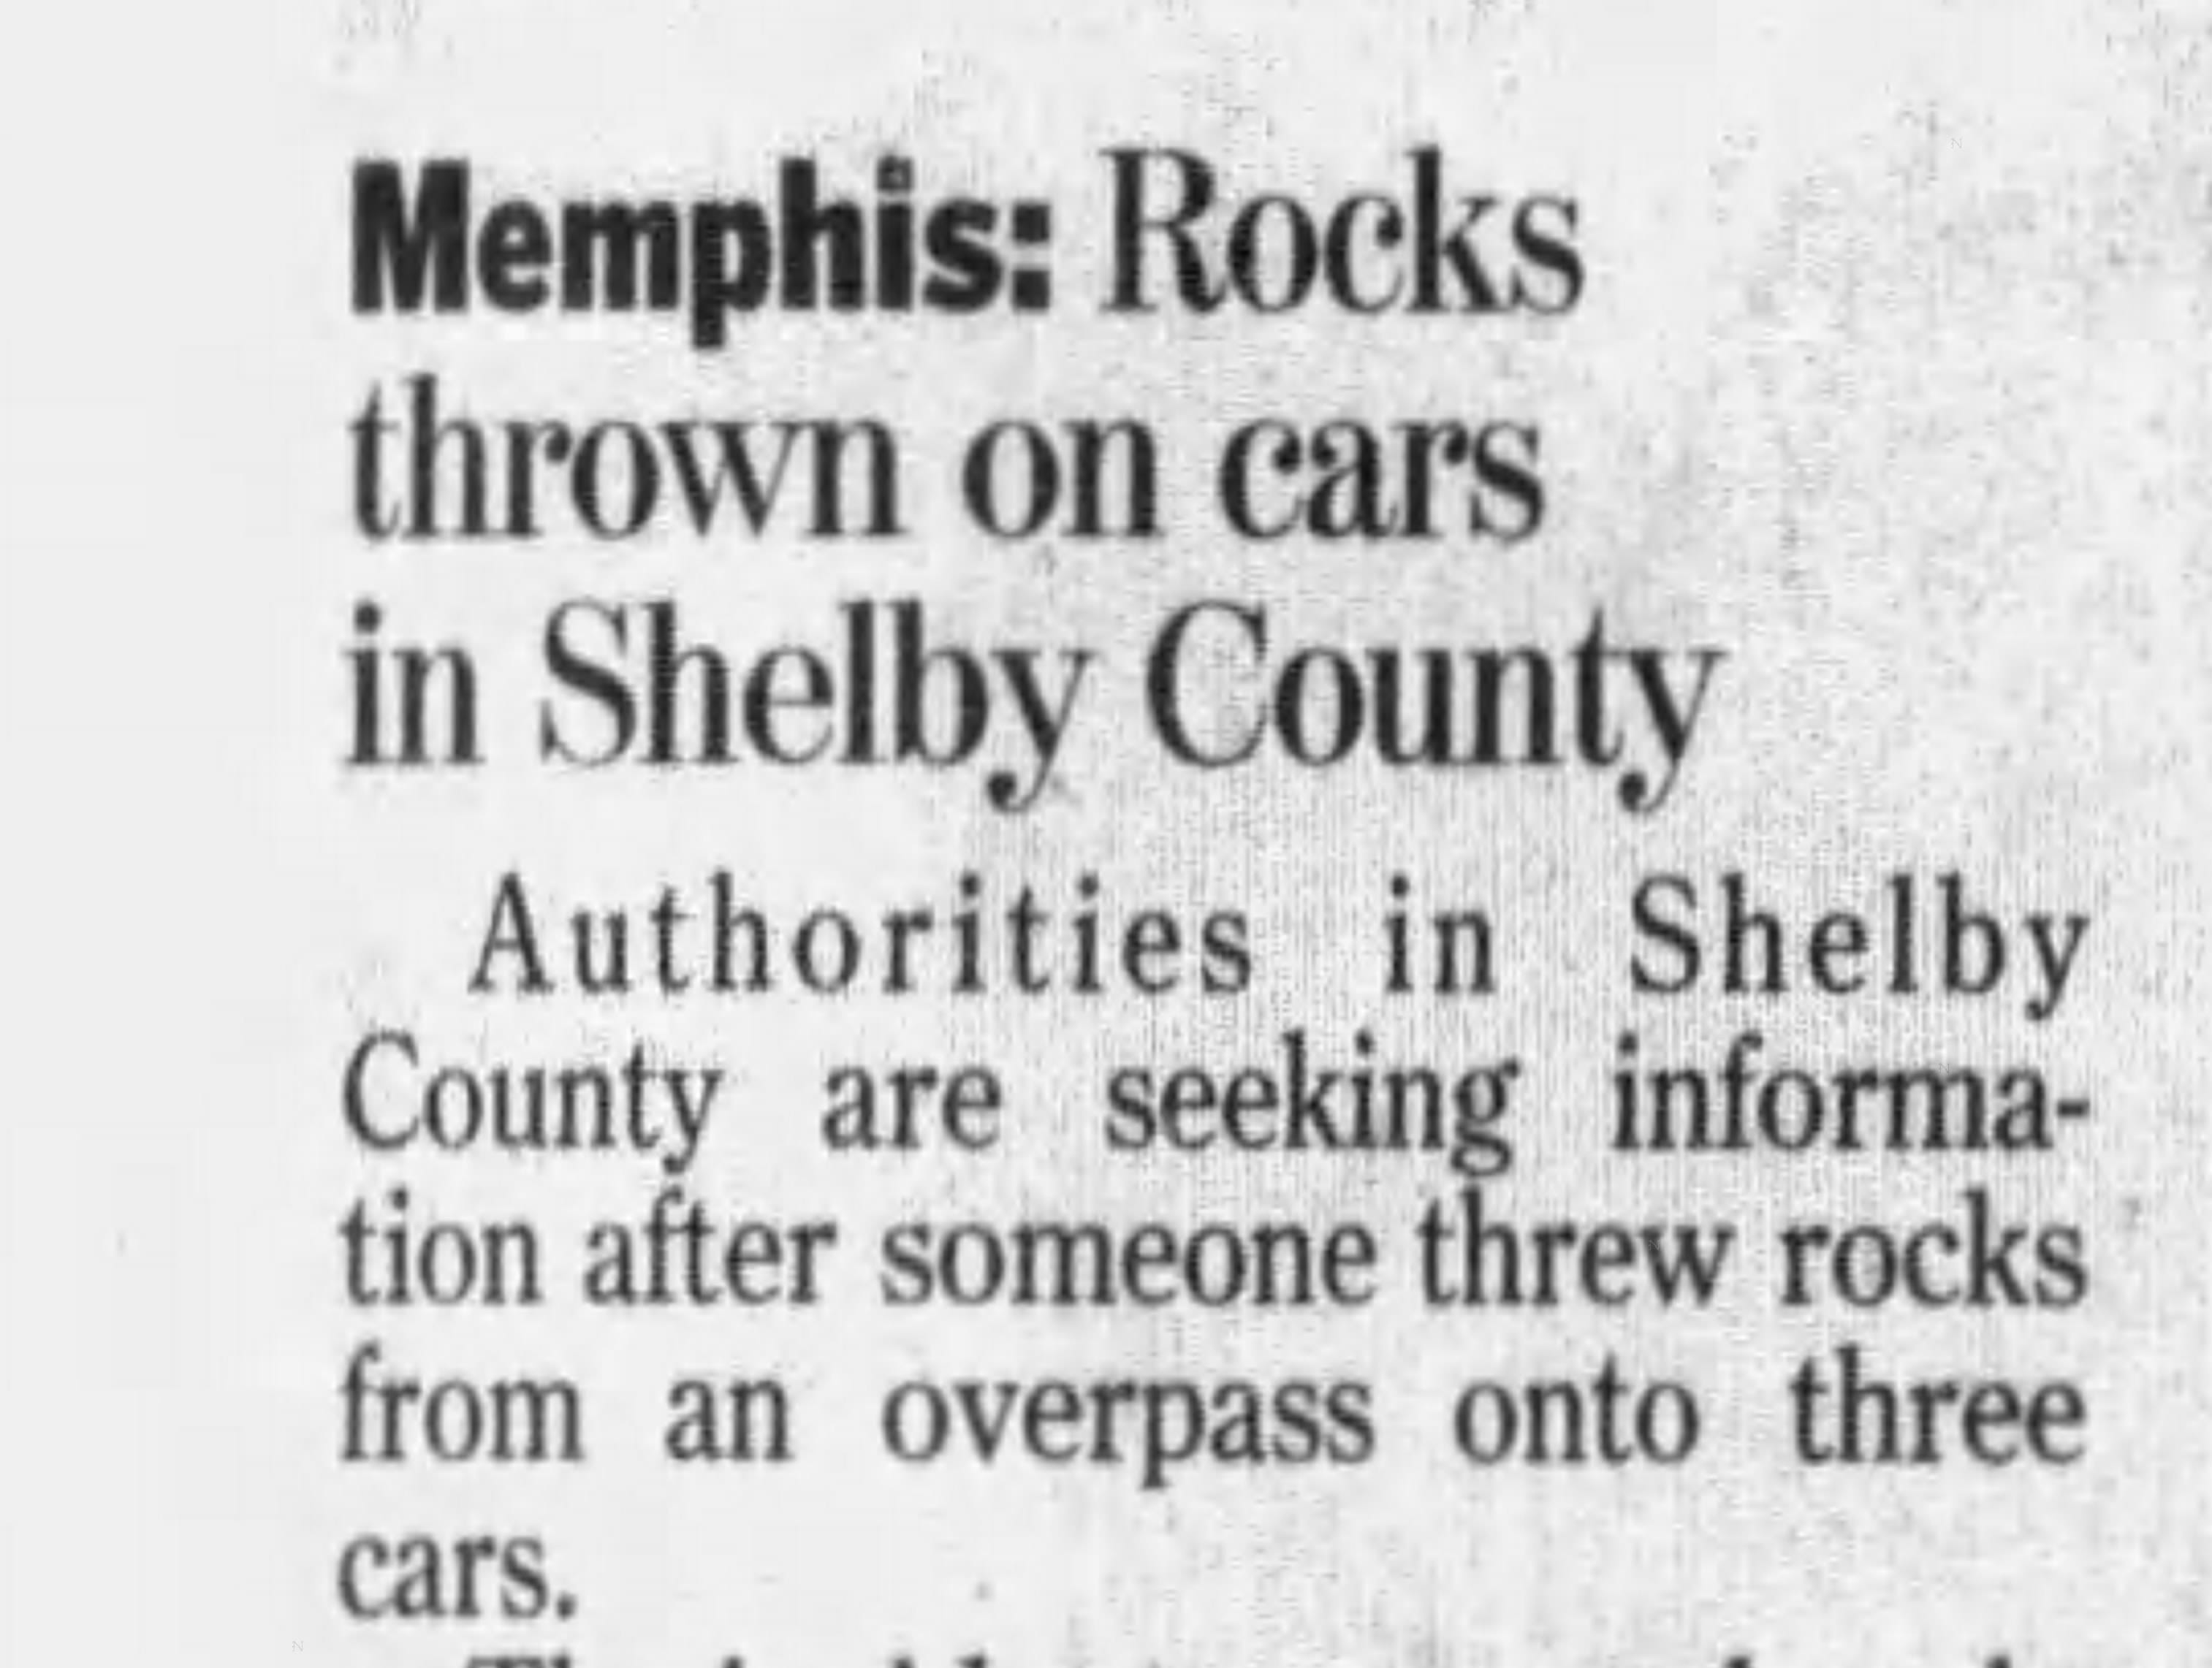 A Jan. 7, 2009, clipping from The Jackson Sun reports a Shelby County incident of minor injuries caused after rocks were thrown off an overpass outside Shelby County.